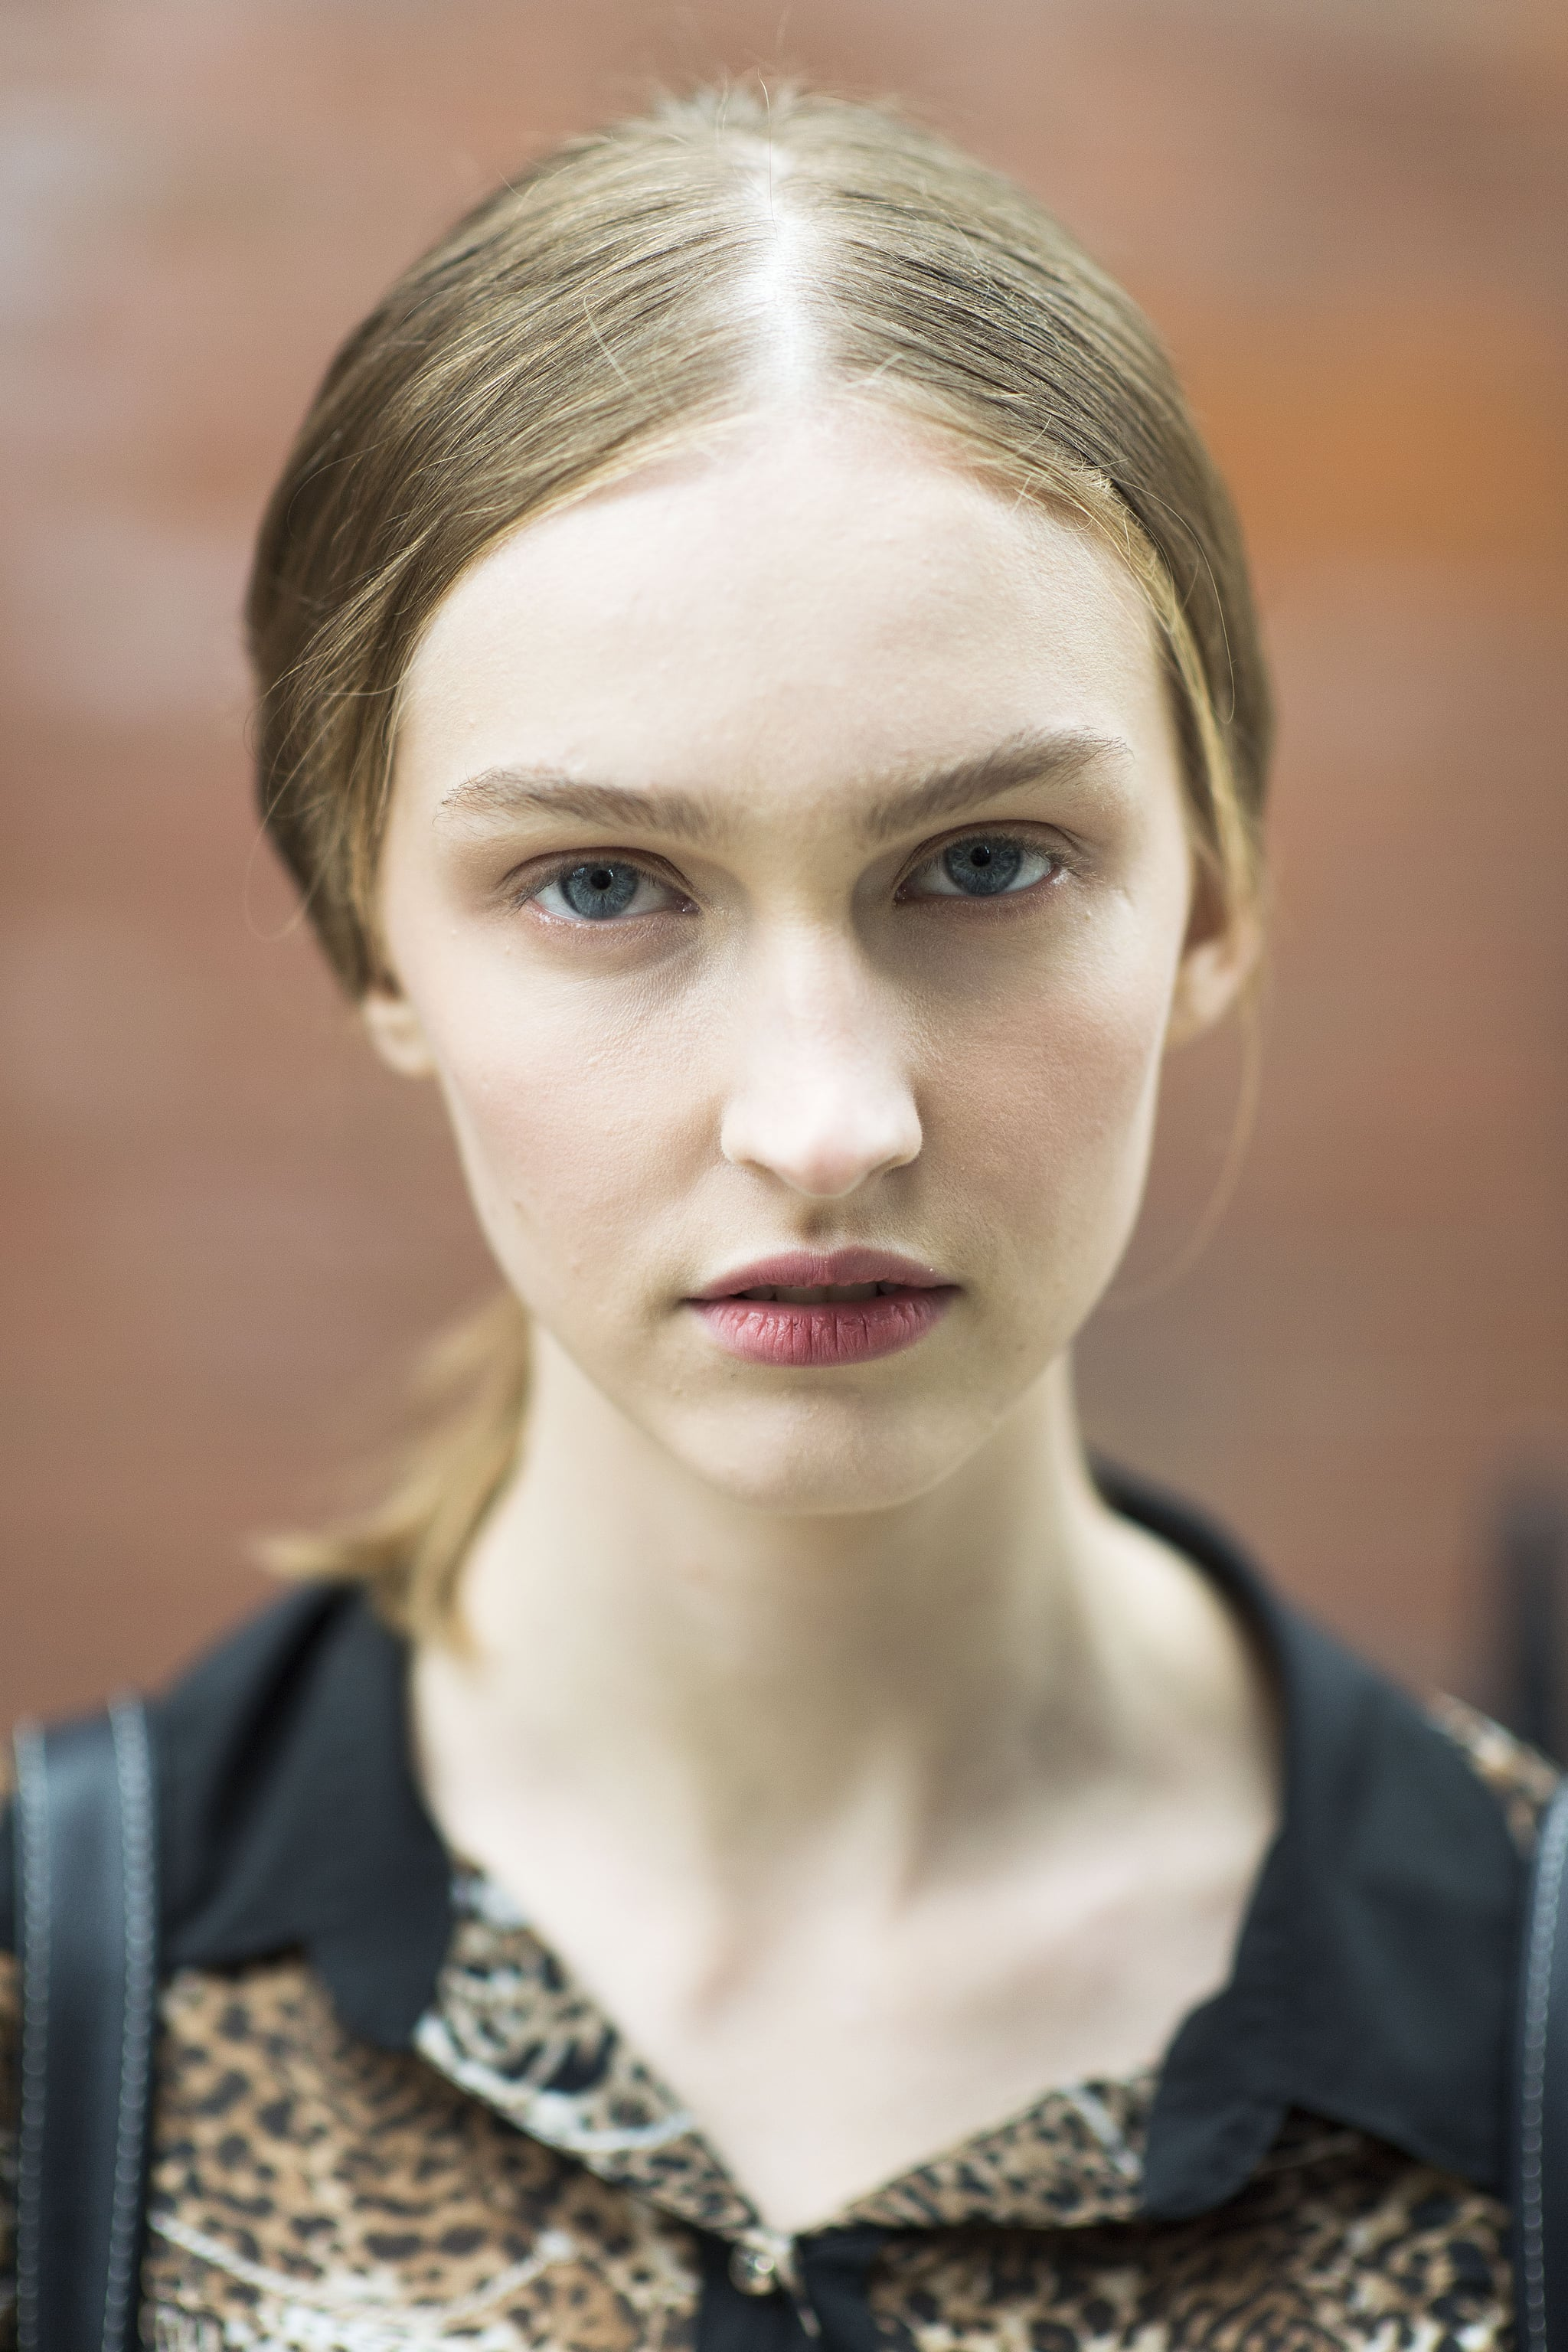 With a middle-parted ponytail and dusty rose lips, this girl looks like she just stepped out of a vintage photograph.  Source: Le 21ème   Adam Katz Sinding